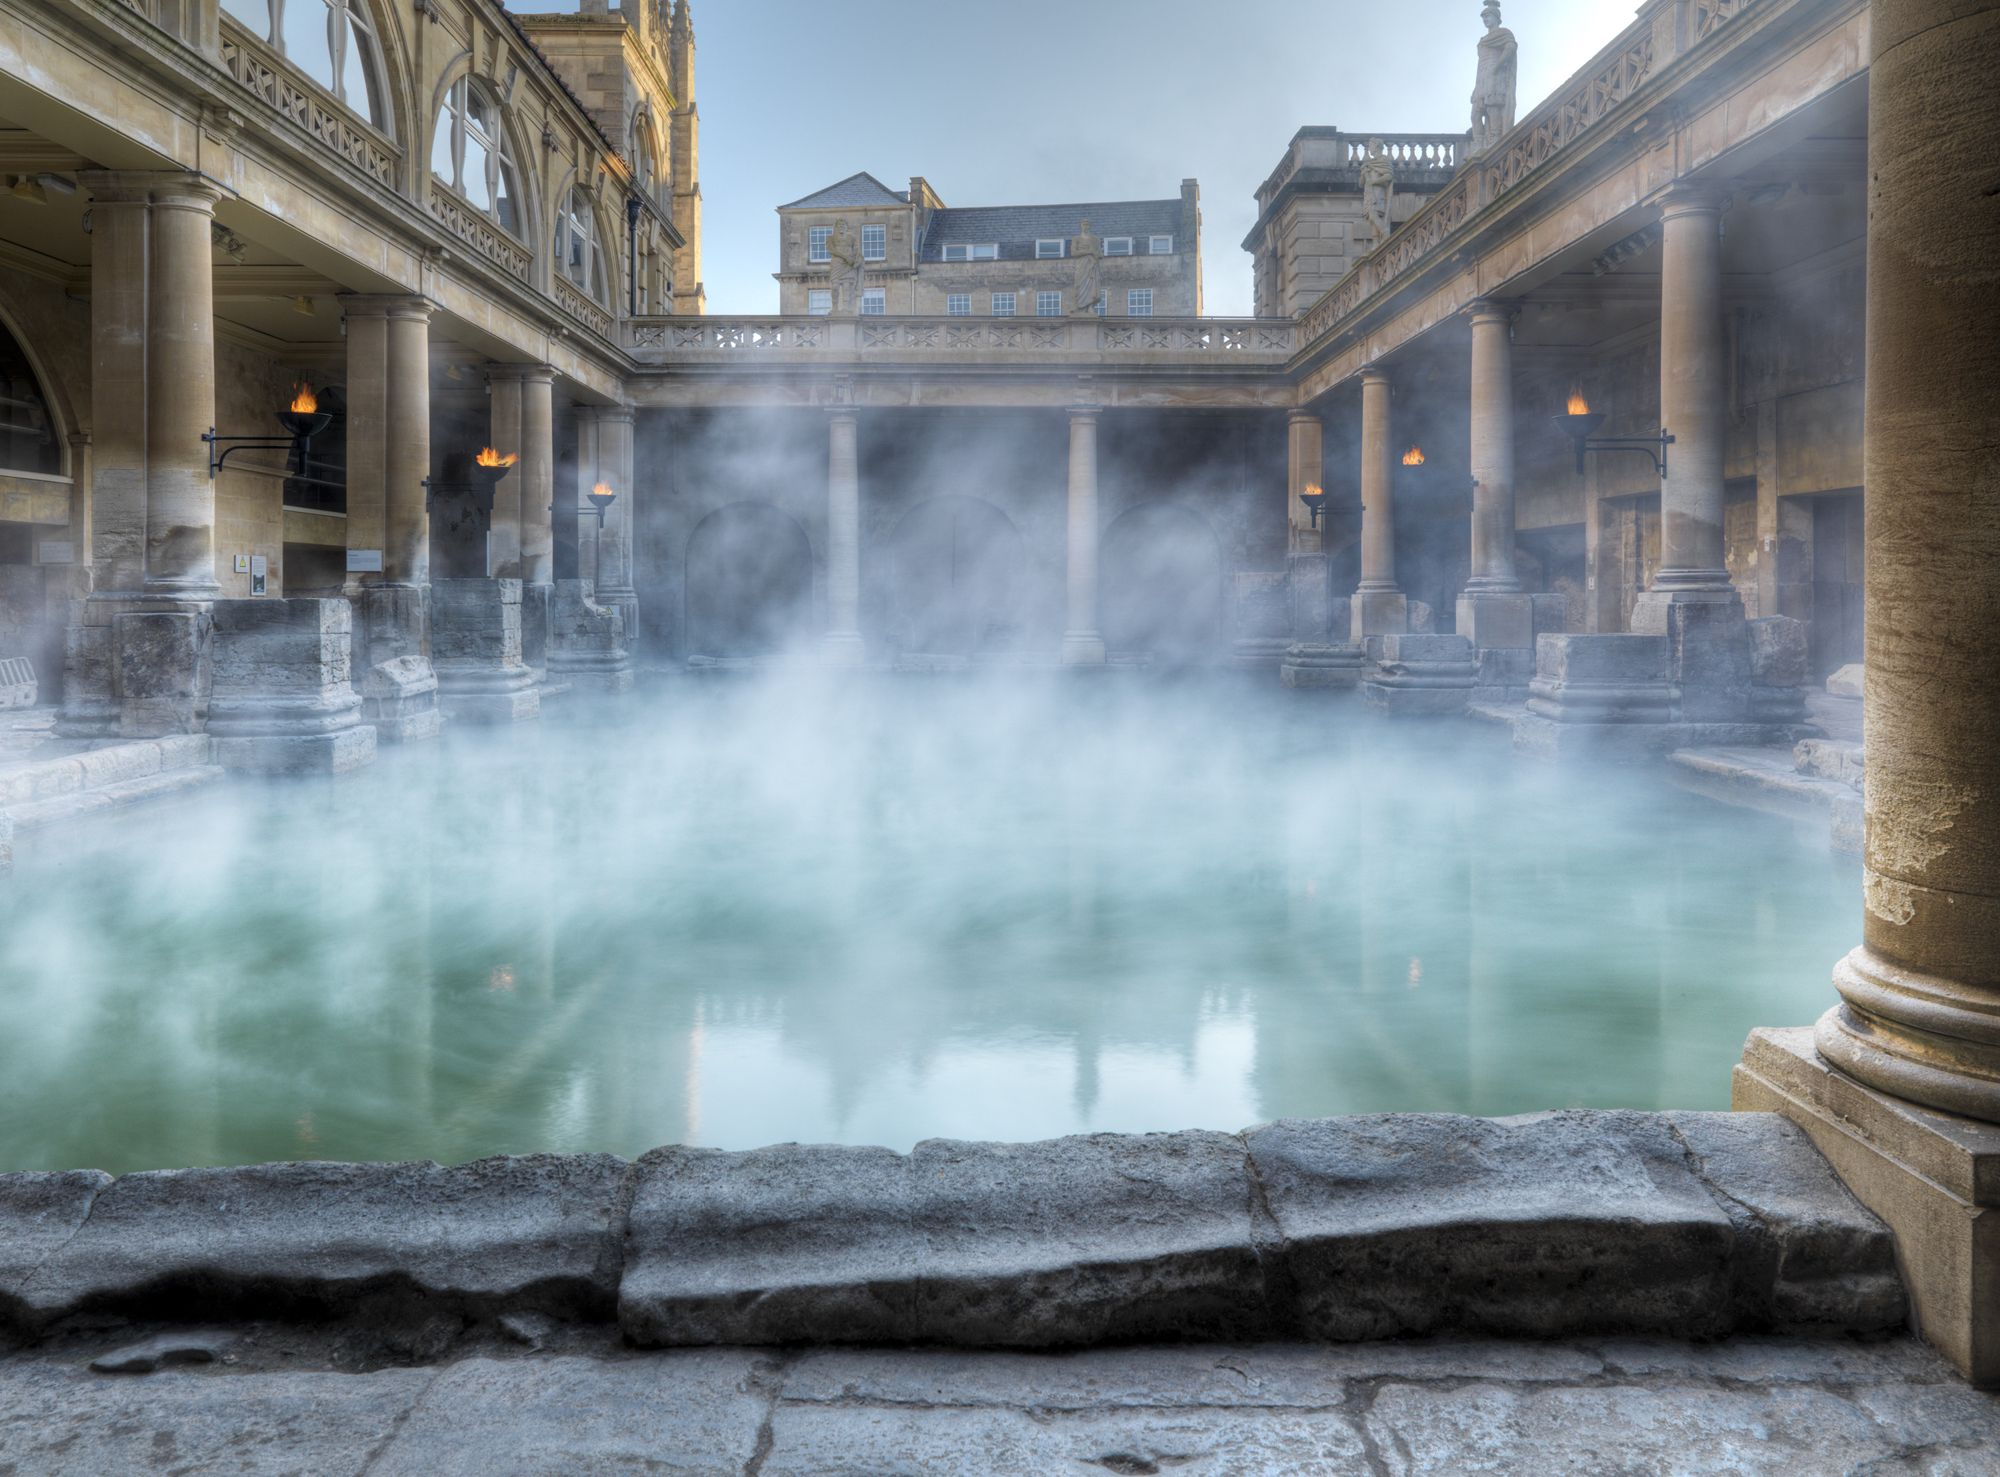 Hotels, B&Bs & Self-Catering in Bath - Cool Places to Stay in the UK - Cool Places to Stay in the UK